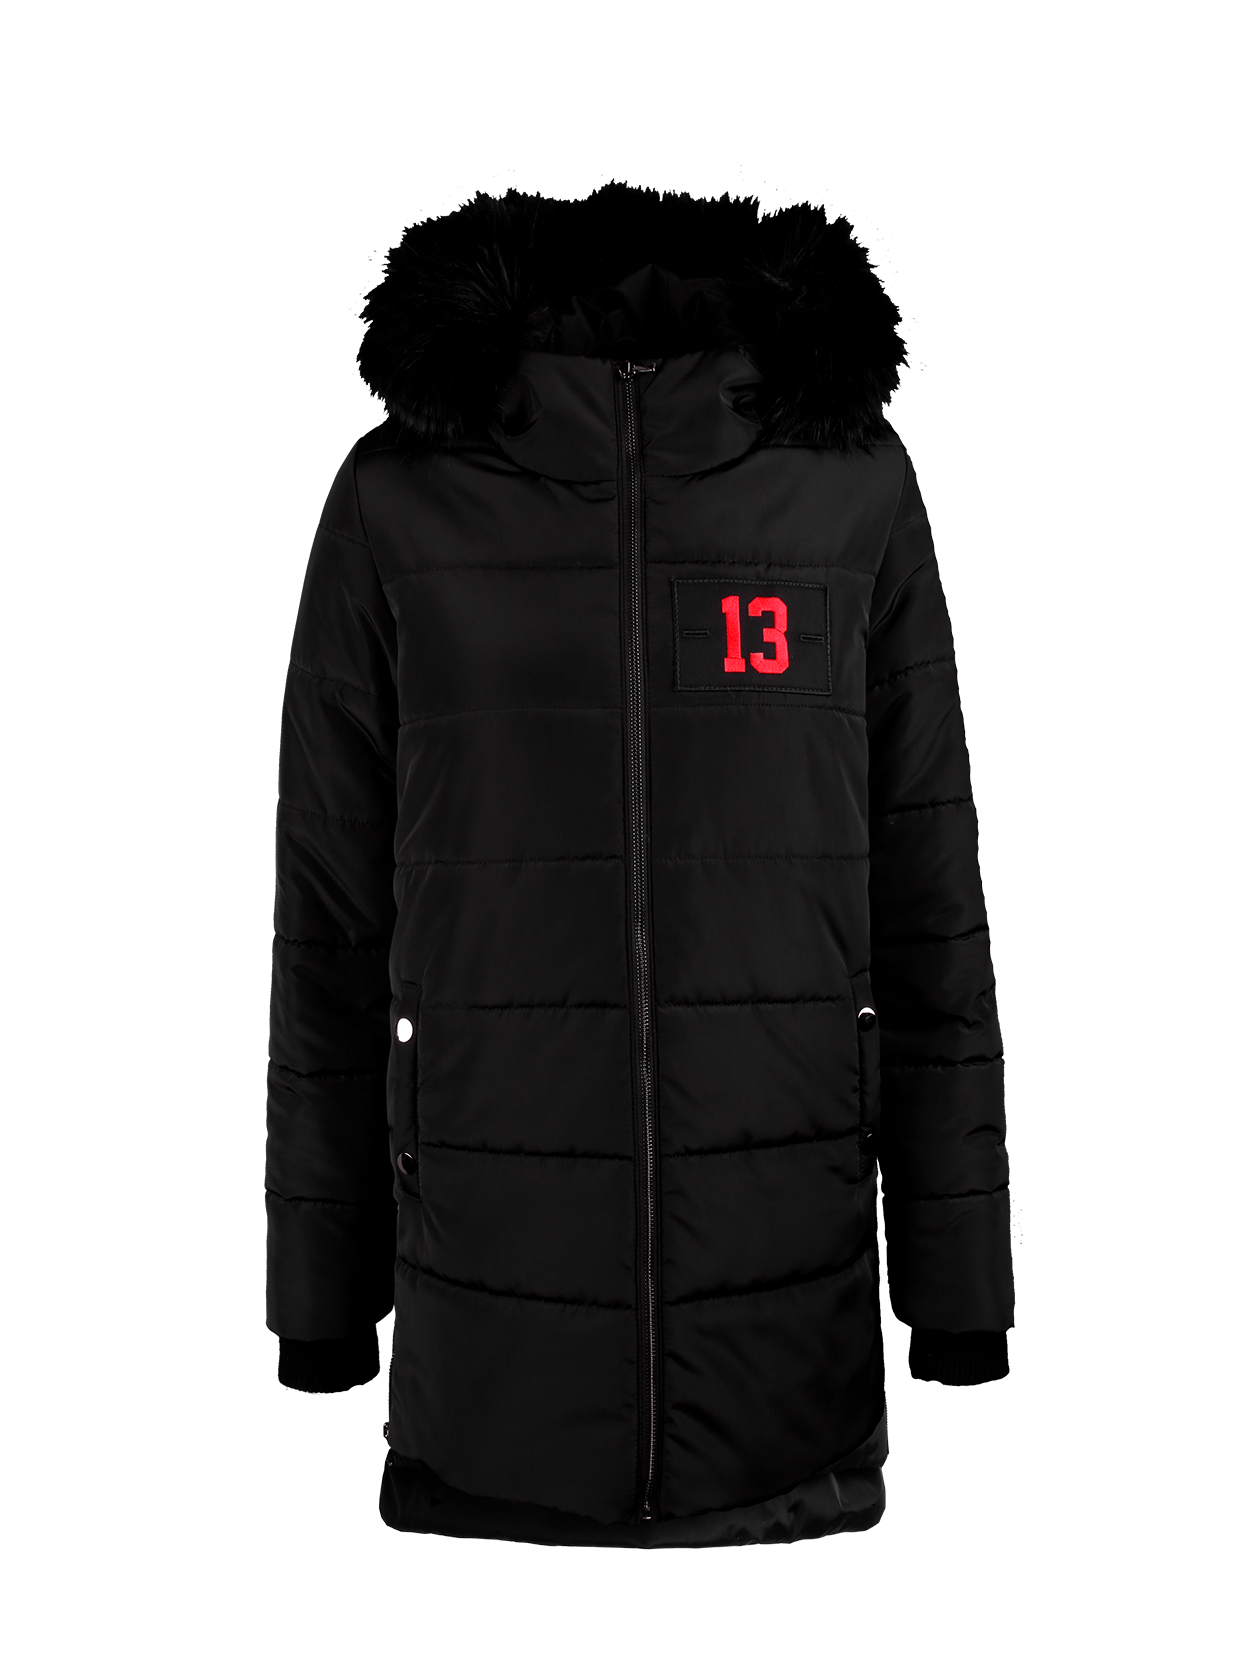 Womens jacket FAUXWomens jacket by Black Star Wear. Hooded design, faux-fur trim, midweight padded fabric for extra warmth, zip fastening, functional side pockets. Regular fit - true to size. Patch  with red 13 on the left side for the black jacket and Black Star patch for khaki. Long line with assimetrical cut. Elastic cuffs, small side zips. 100% polyester.<br><br>size: M<br>color: Black<br>gender: female